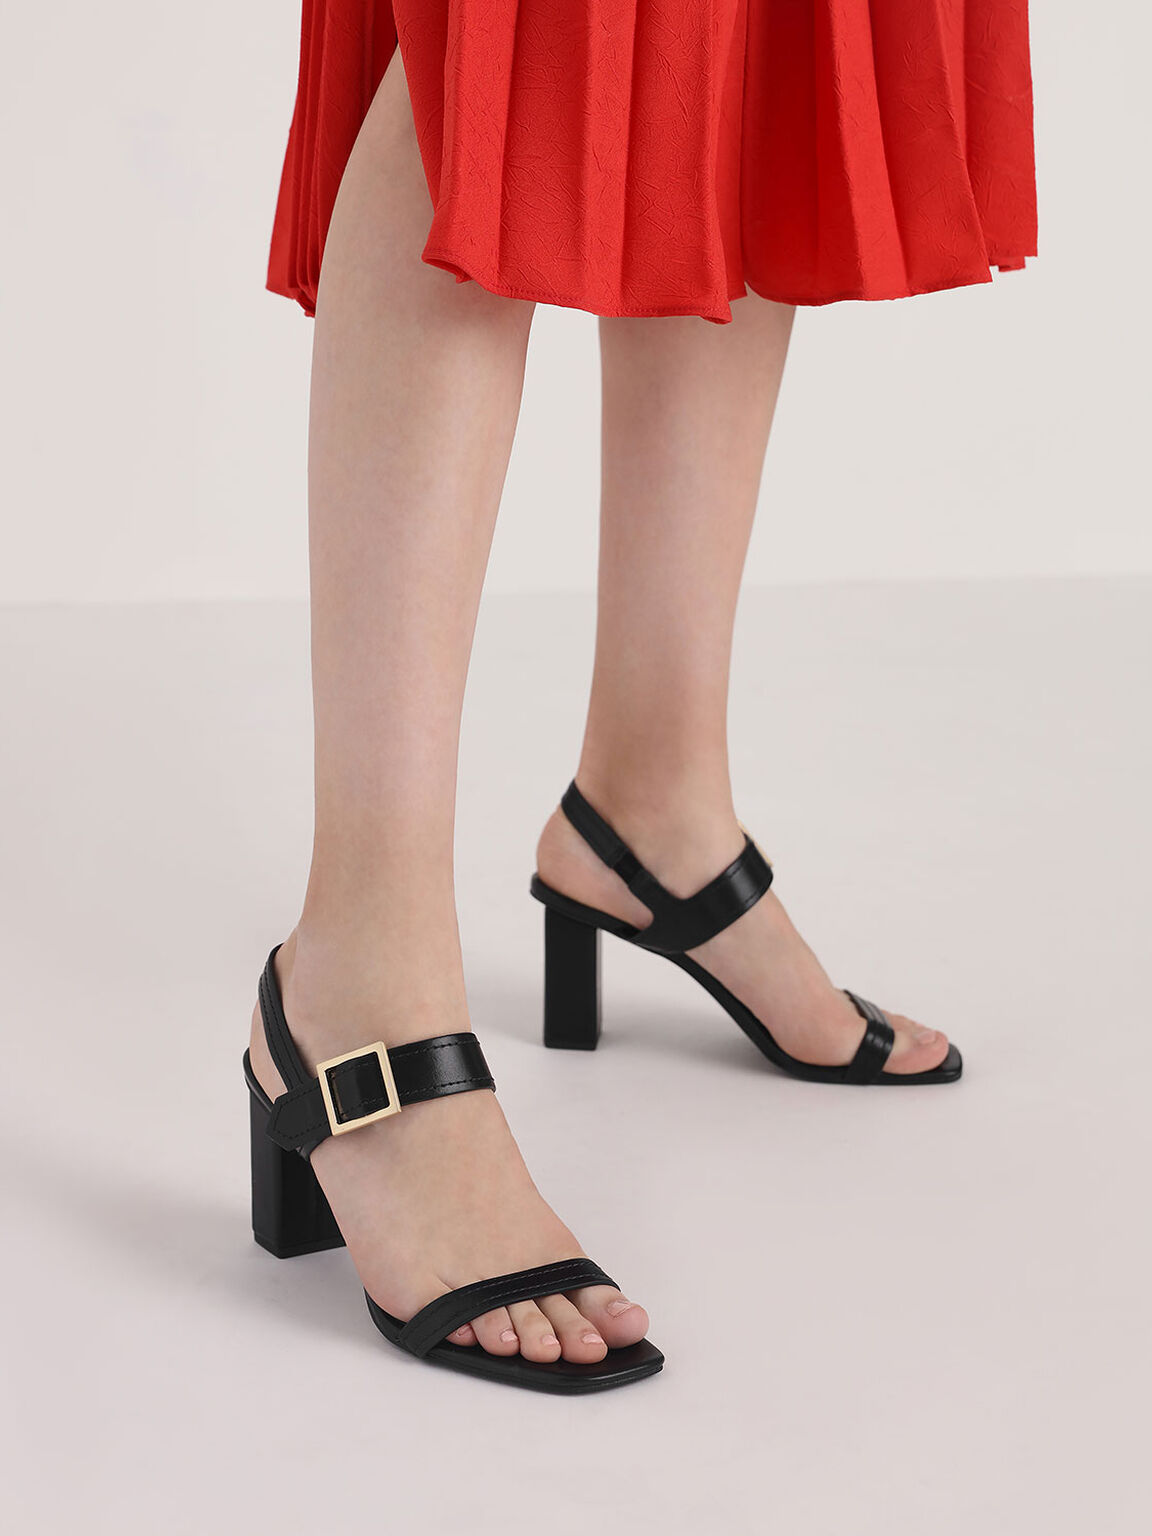 Buckle Detail Block Heel Sandals, Black, hi-res